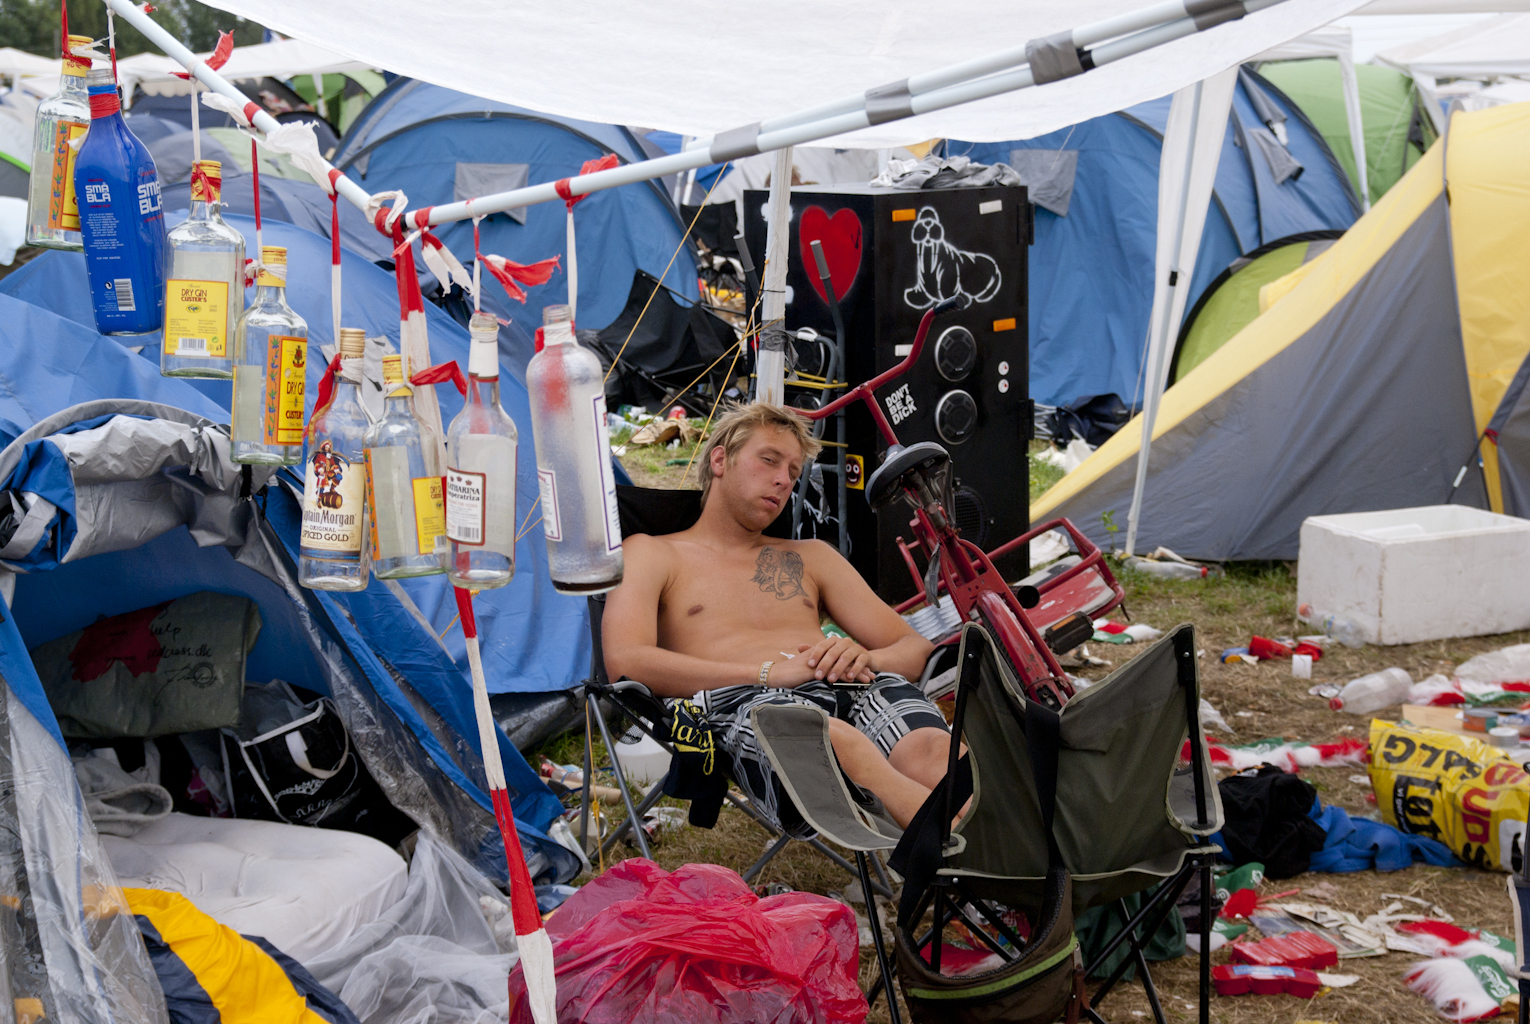 Campinglife at Roskilde Festival 2010